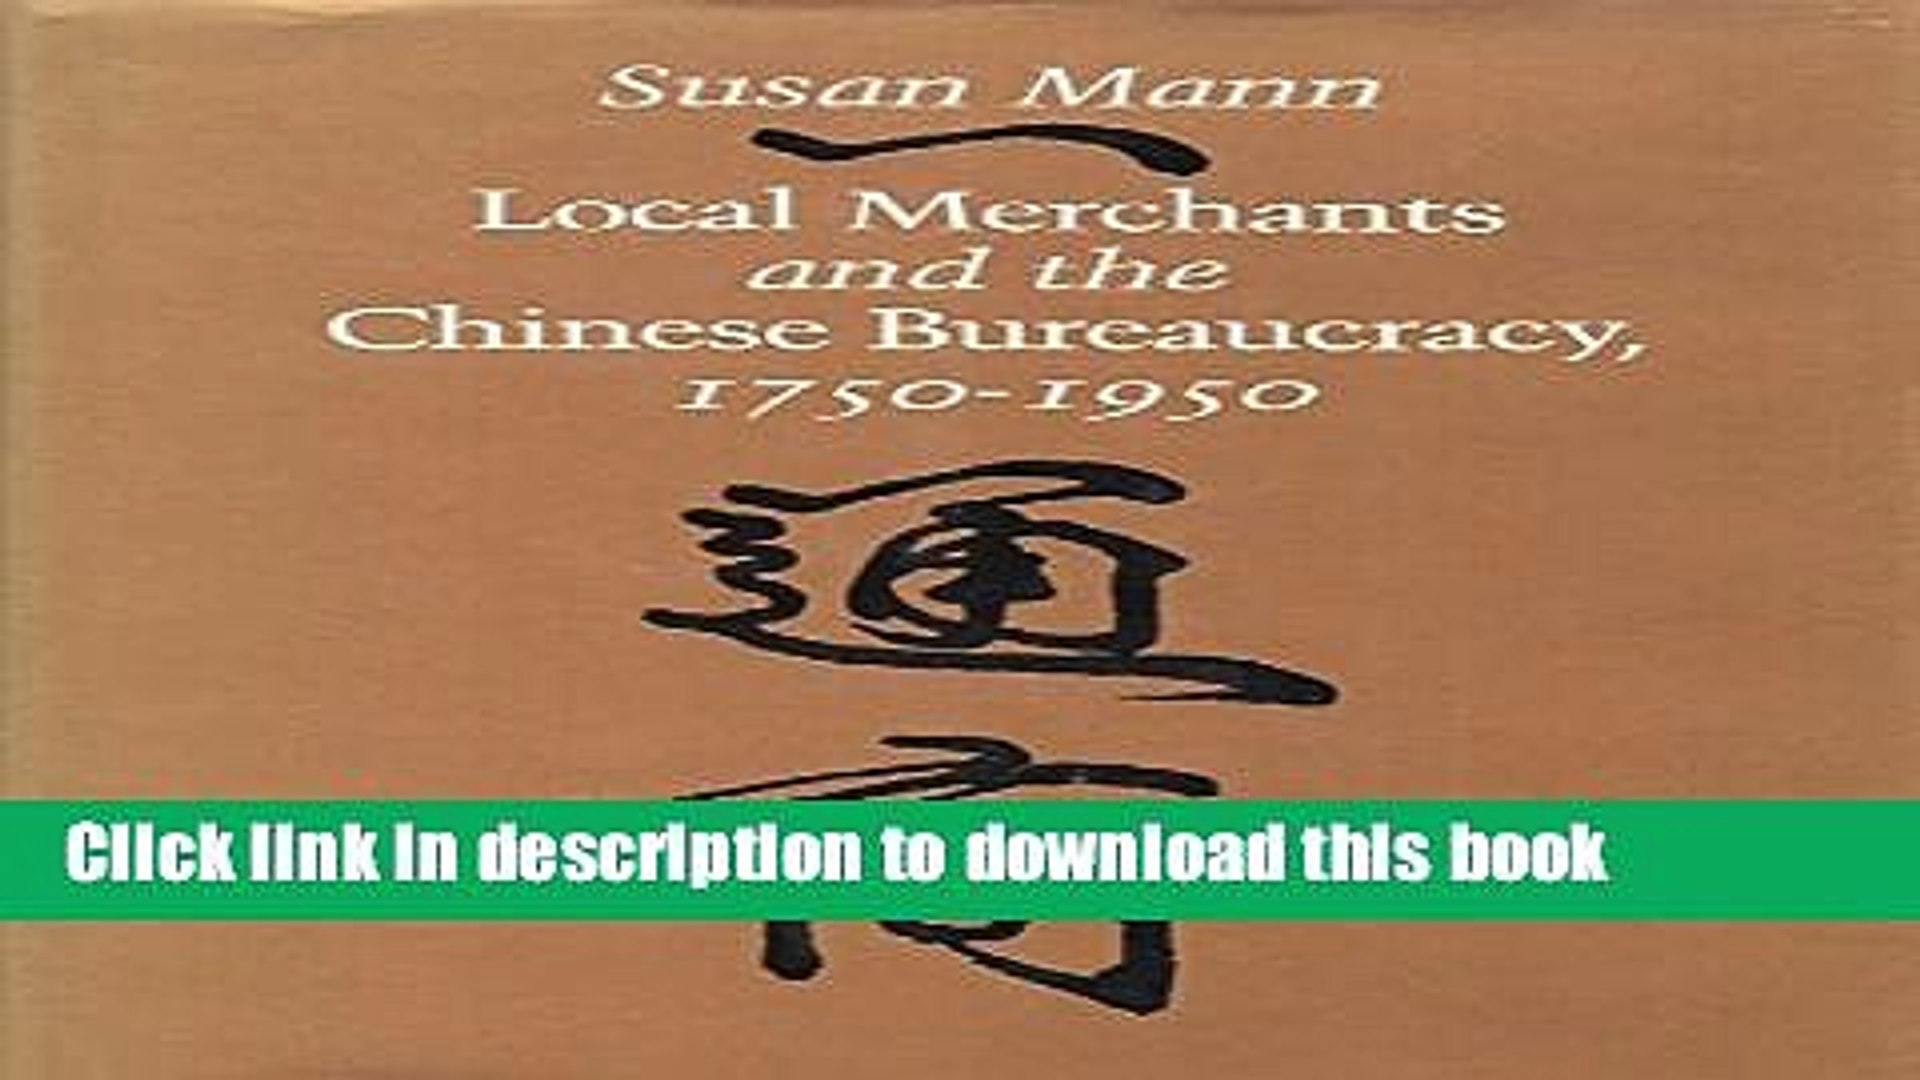 [Download] Local Merchants and the Chinese Bureaucracy, 1750-1950  Read Online